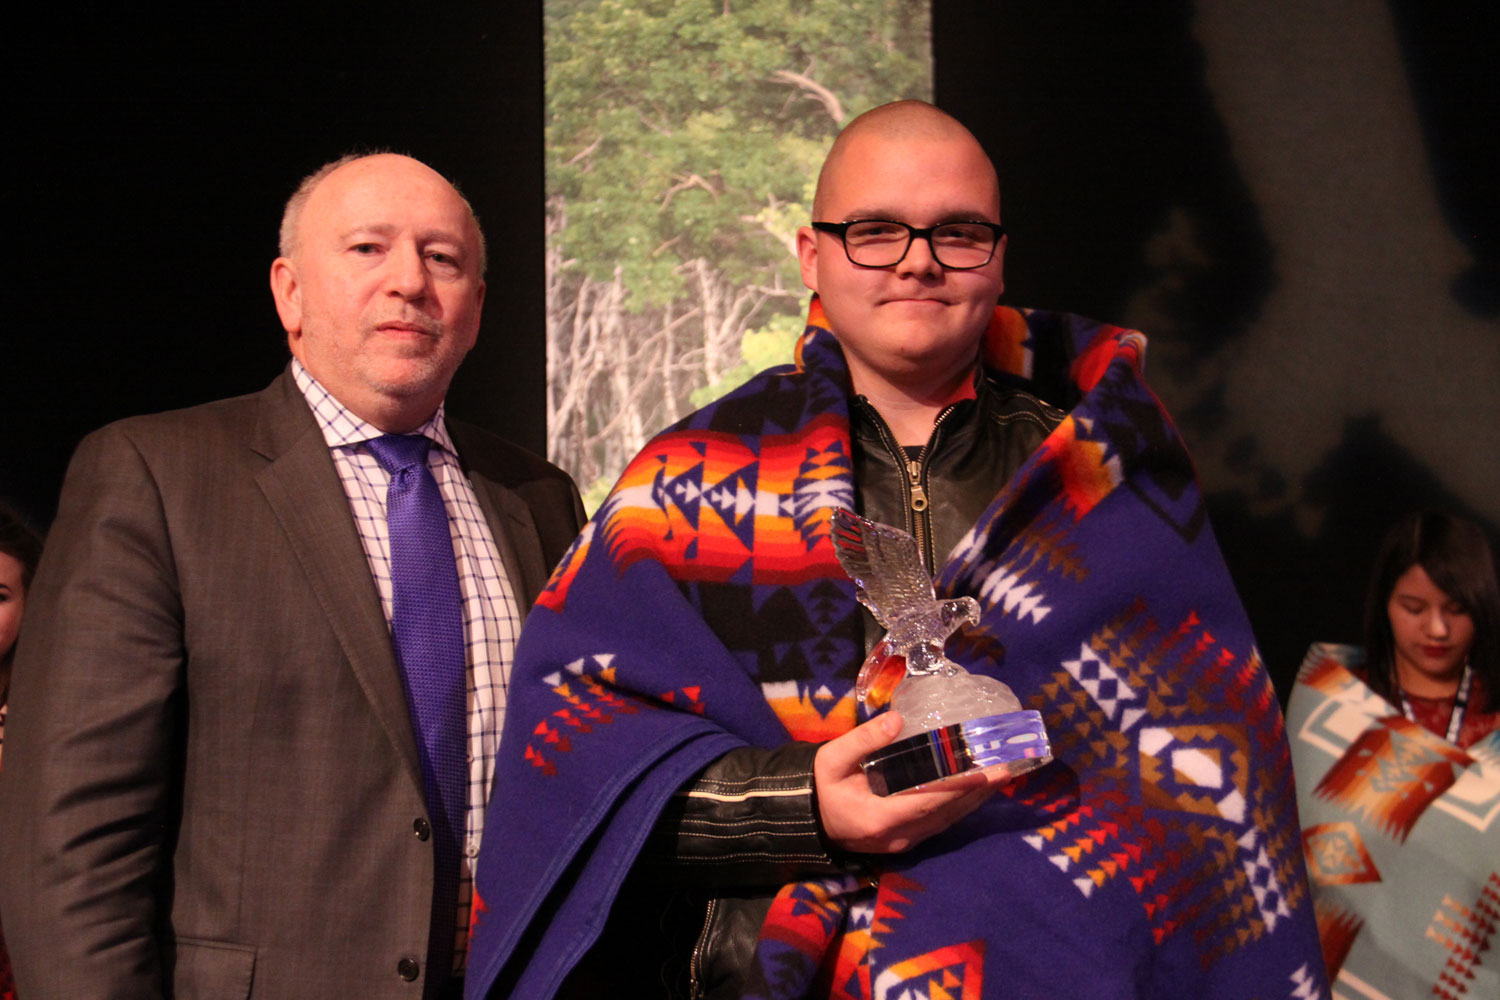 Ron Styles of SaskTel presented the Male Outstanding Achievement award to Brayden Storm